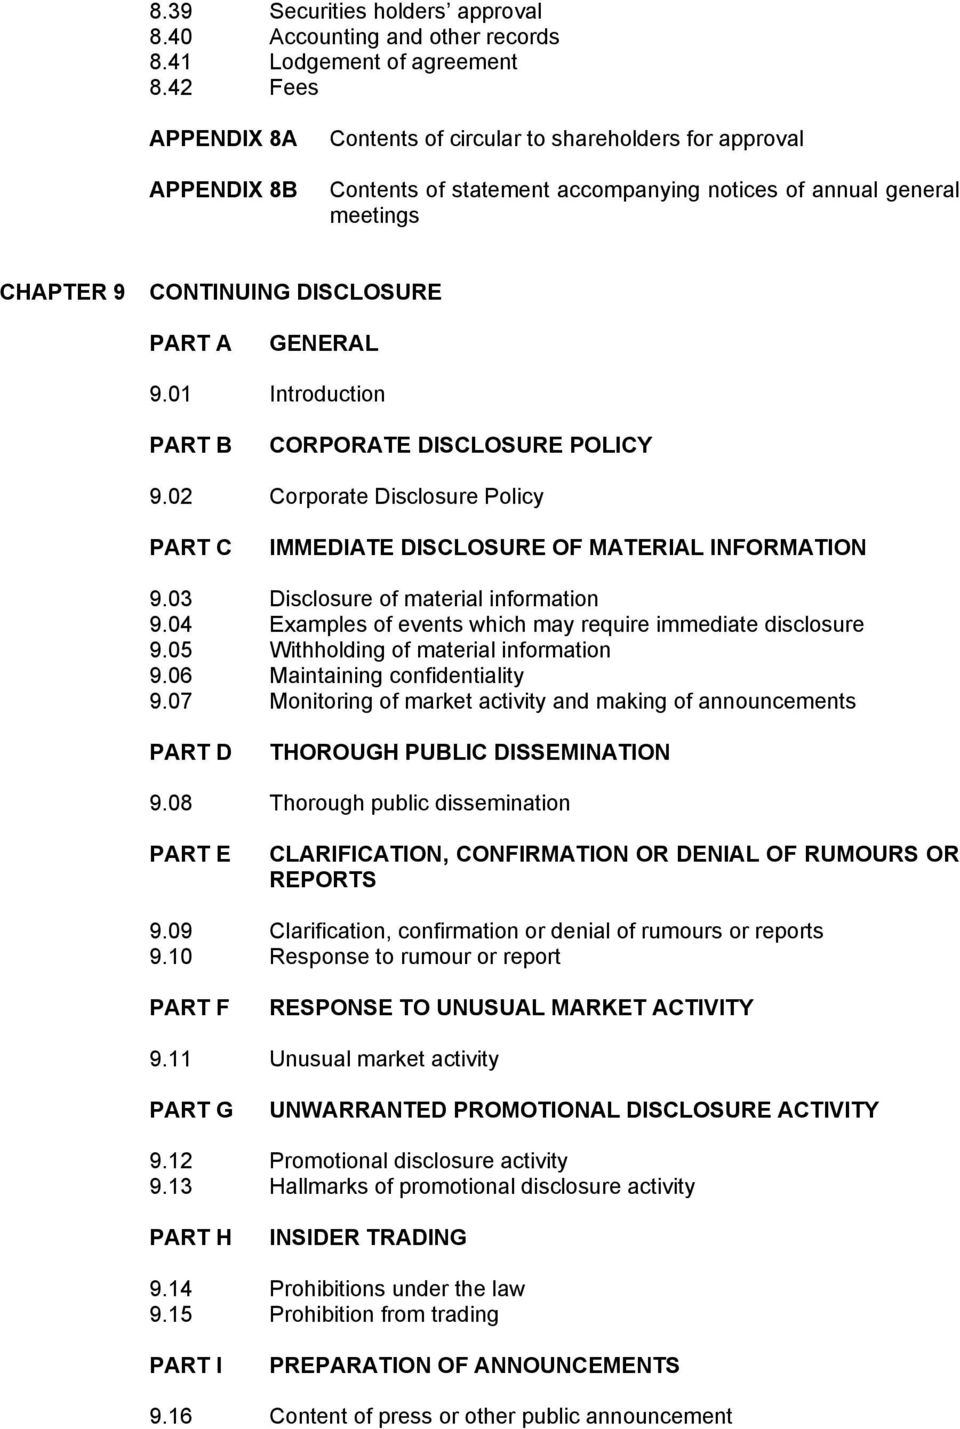 9.01 Introduction PART B CORPORATE DISCLOSURE POLICY 9.02 Corporate Disclosure Policy PART C IMMEDIATE DISCLOSURE OF MATERIAL INFORMATION 9.03 Disclosure of material information 9.